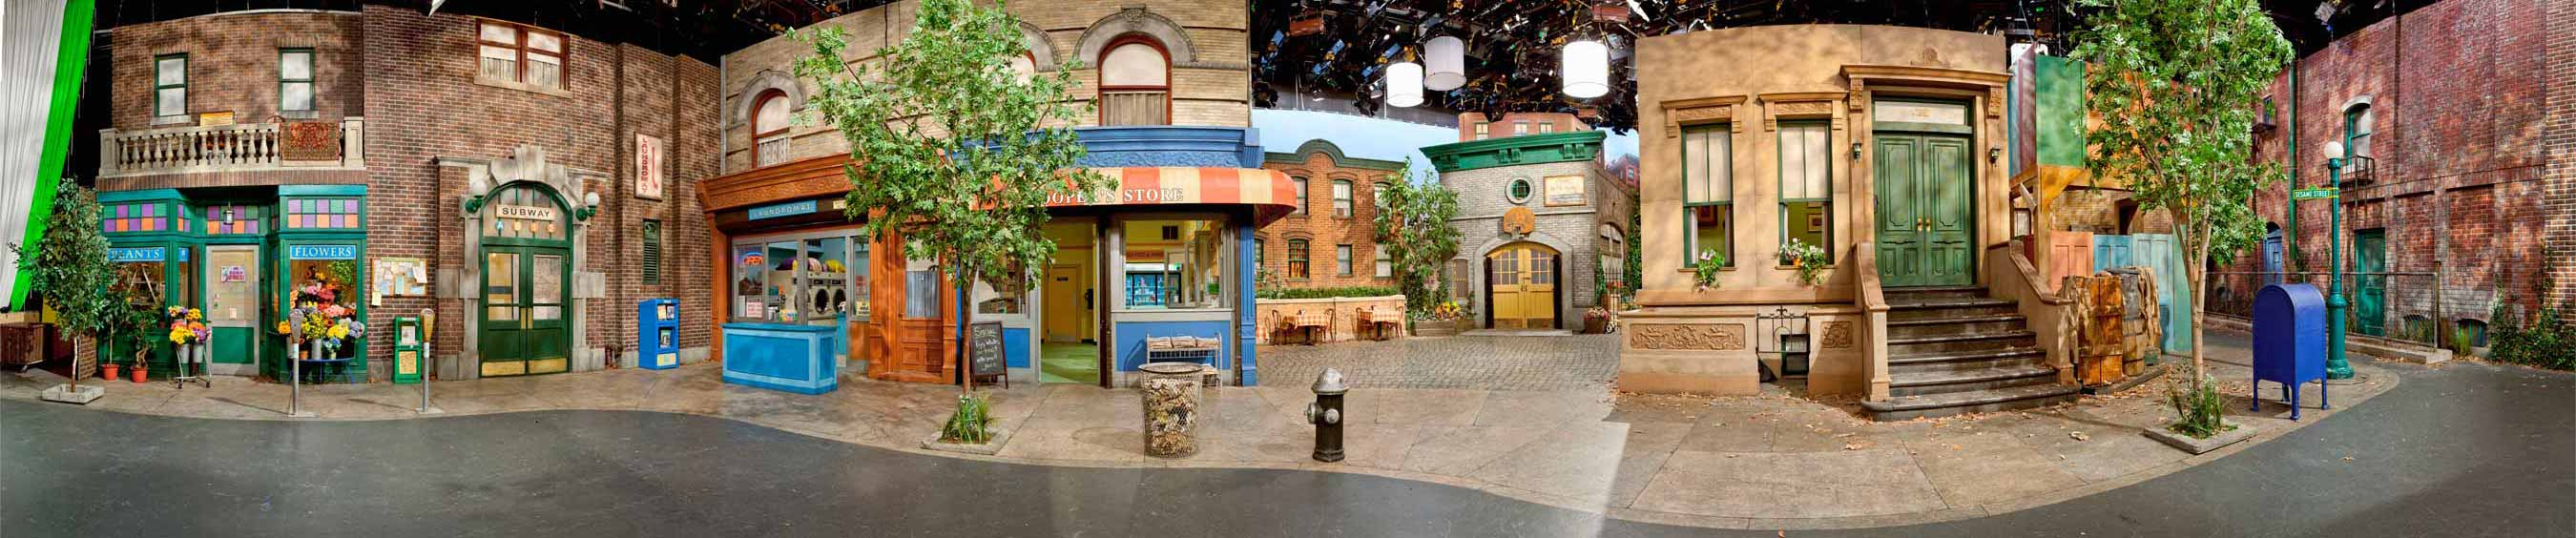 Image result for sesame street set